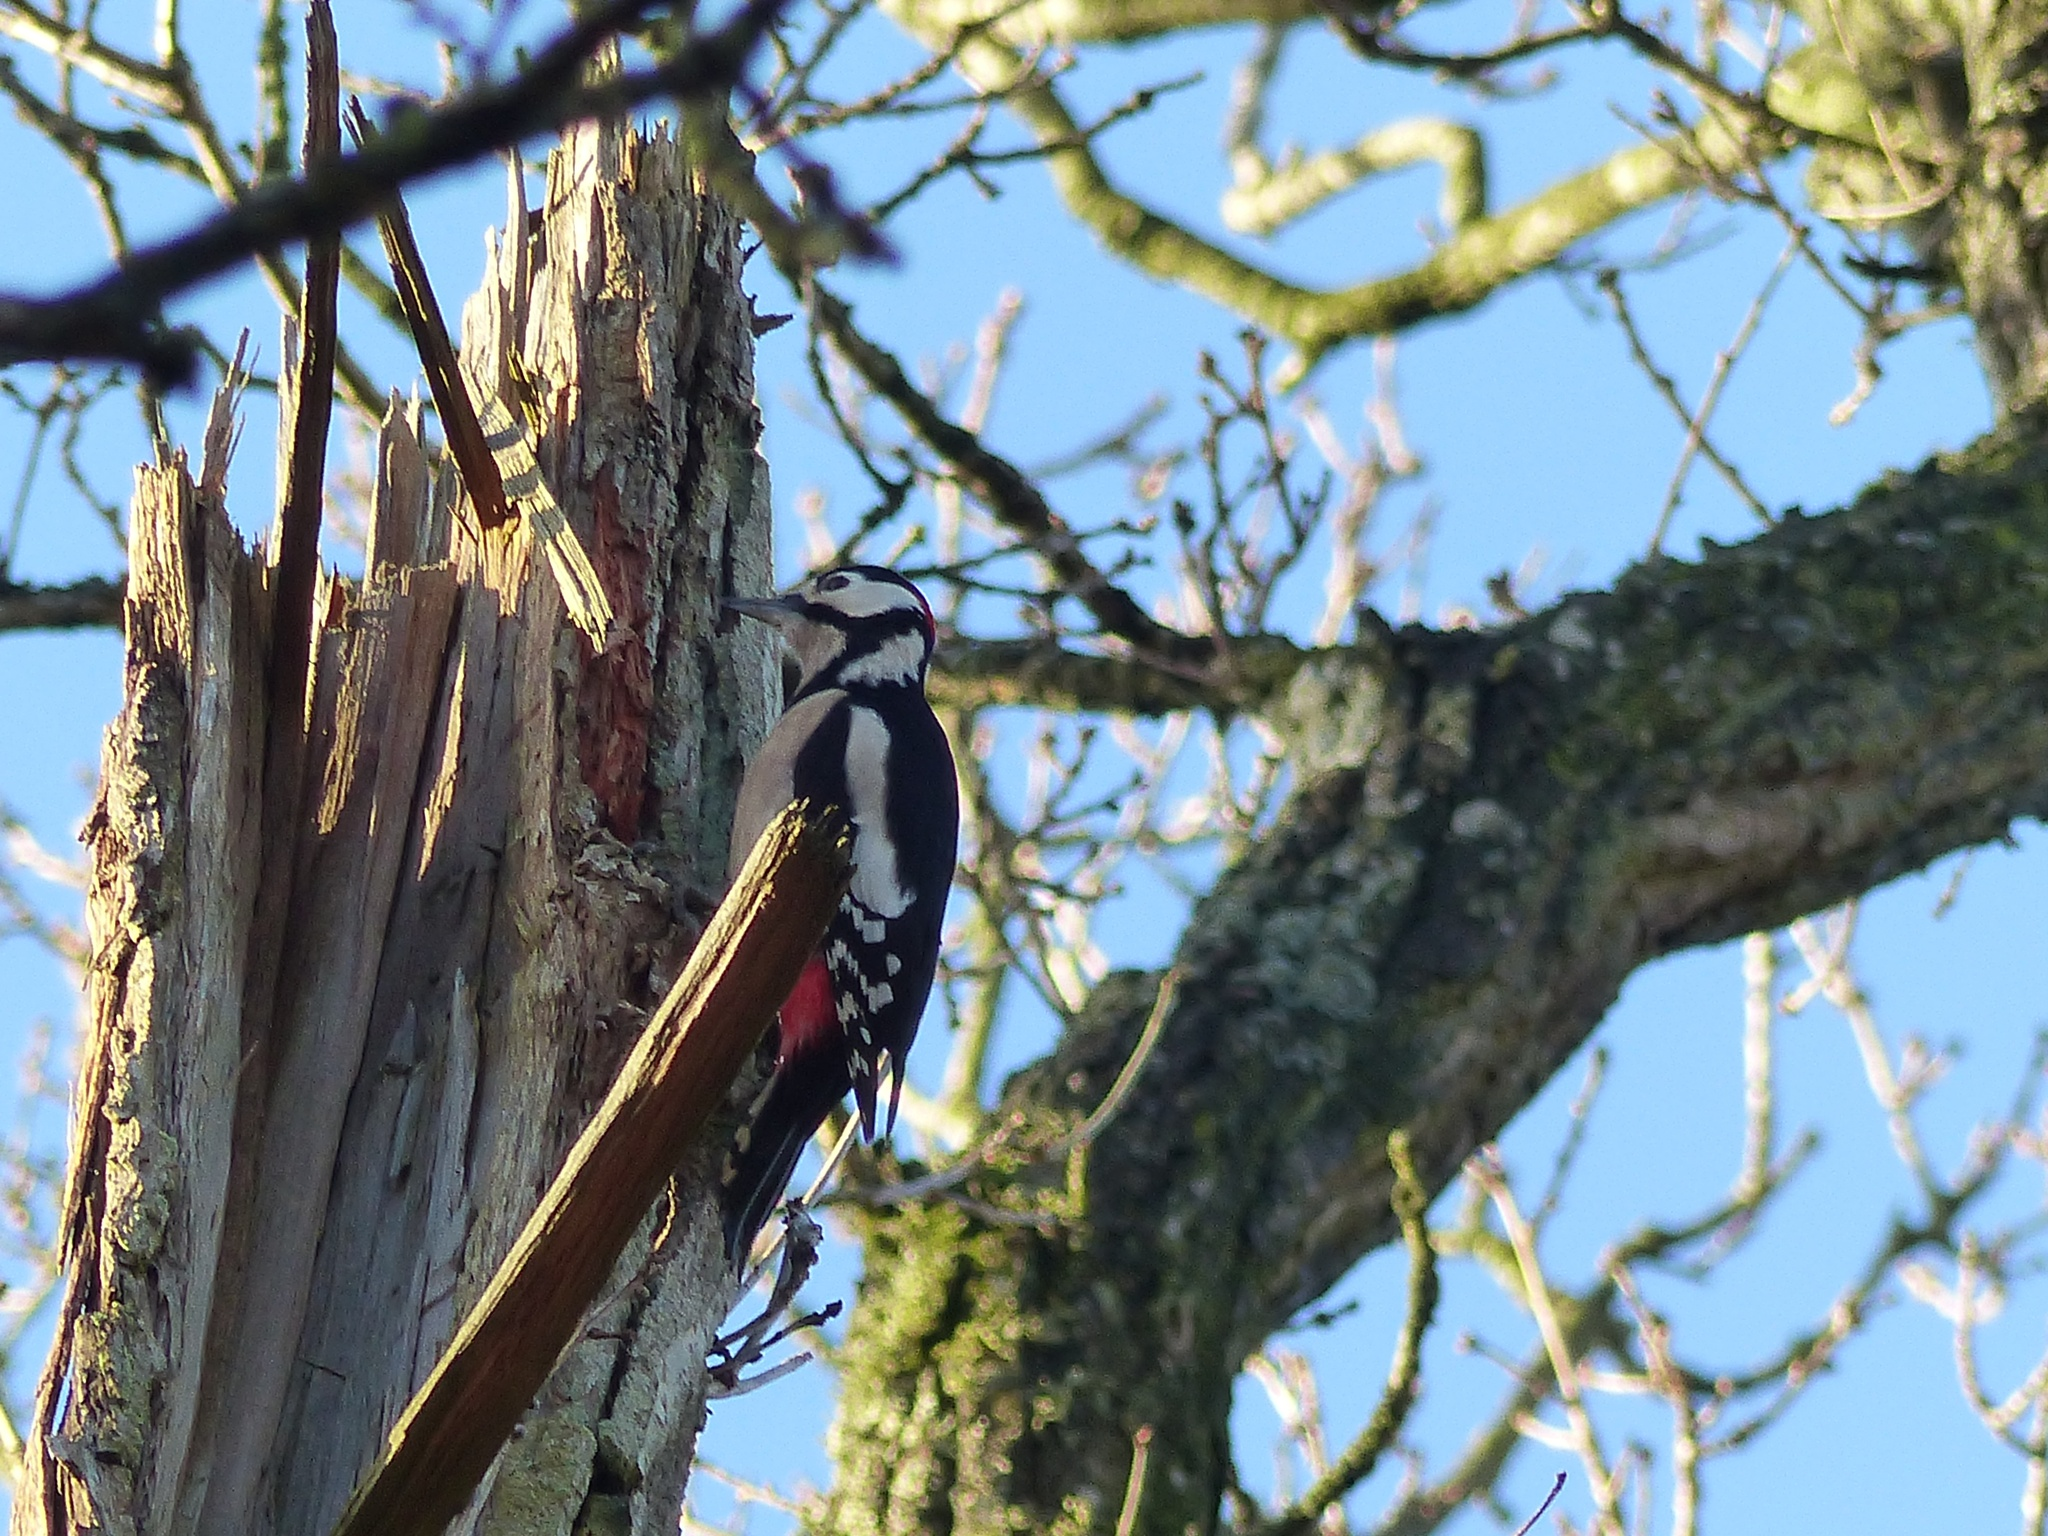 Red spotted woodpecker by Lars M.